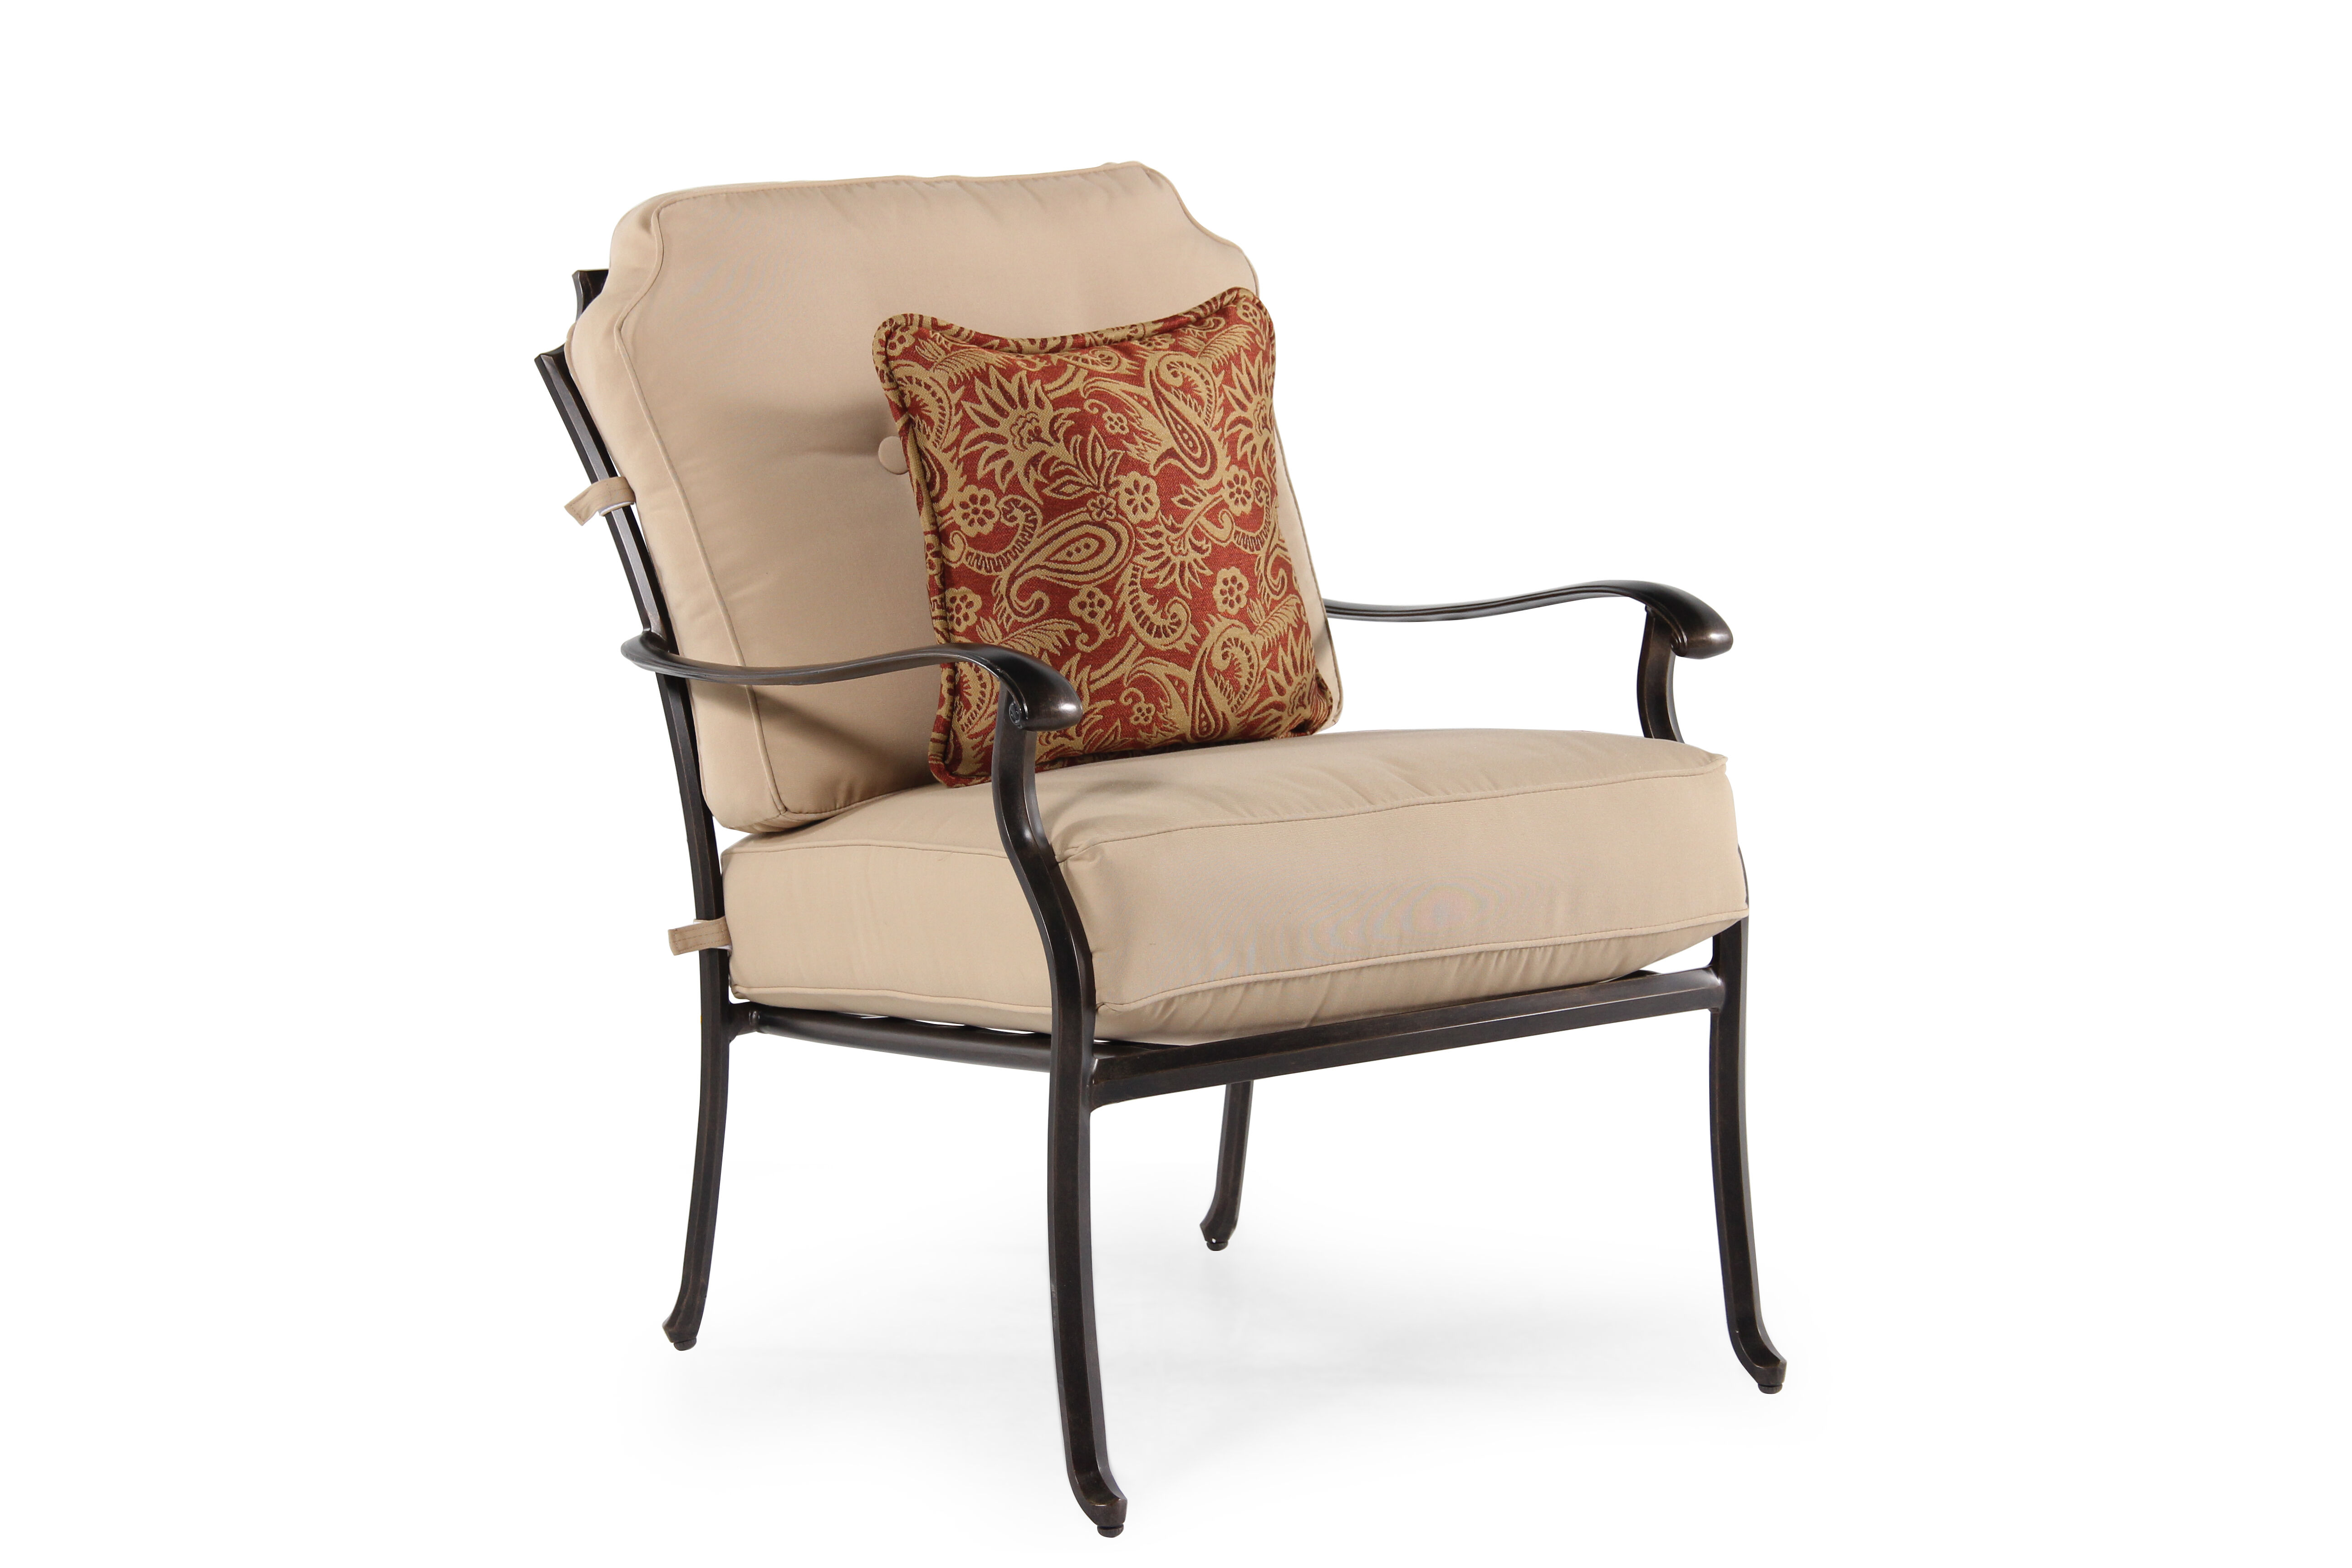 lounge chair patio minnie desk agio heritage select mathis brothers